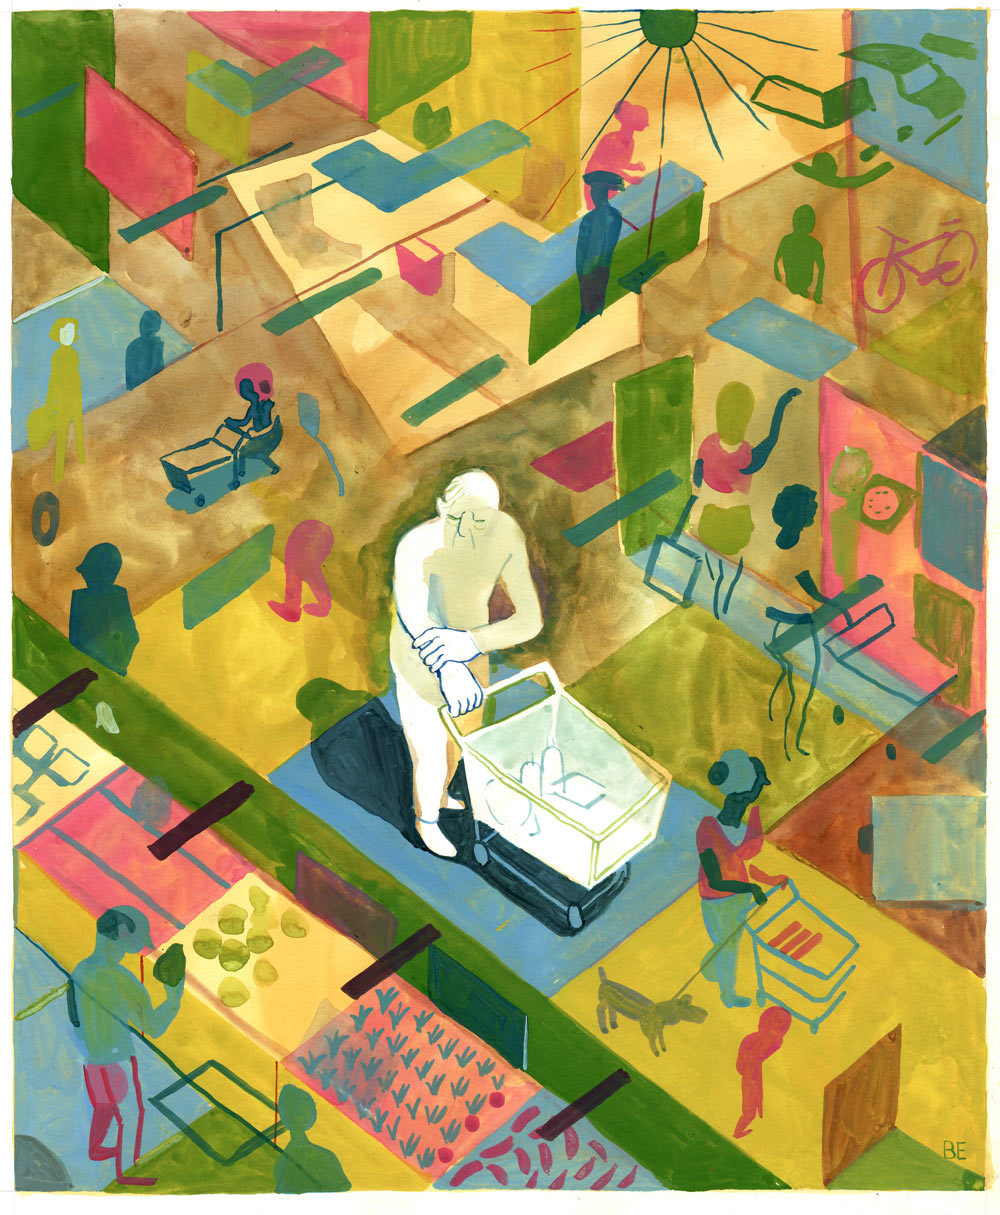 Illustrations and Cartoons by Brecht Evens: BrouwersEvensTunnelvisie.jpg